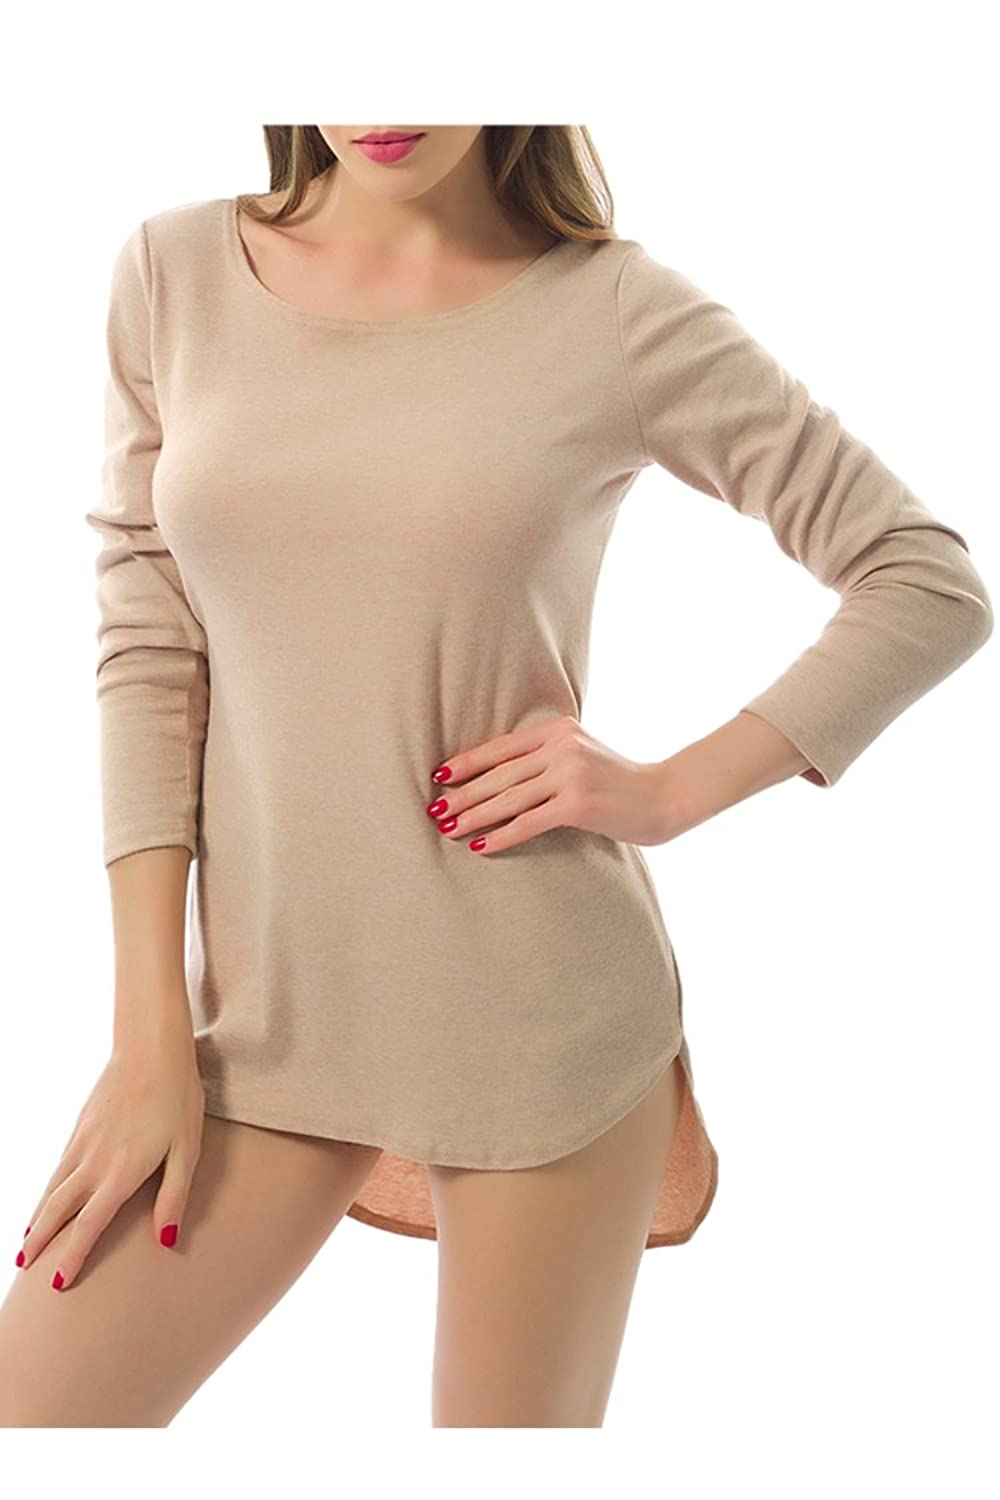 Cutiefox@ Women's Sexy Cashmere Long Sleeve Pullover Sweater Cardigan